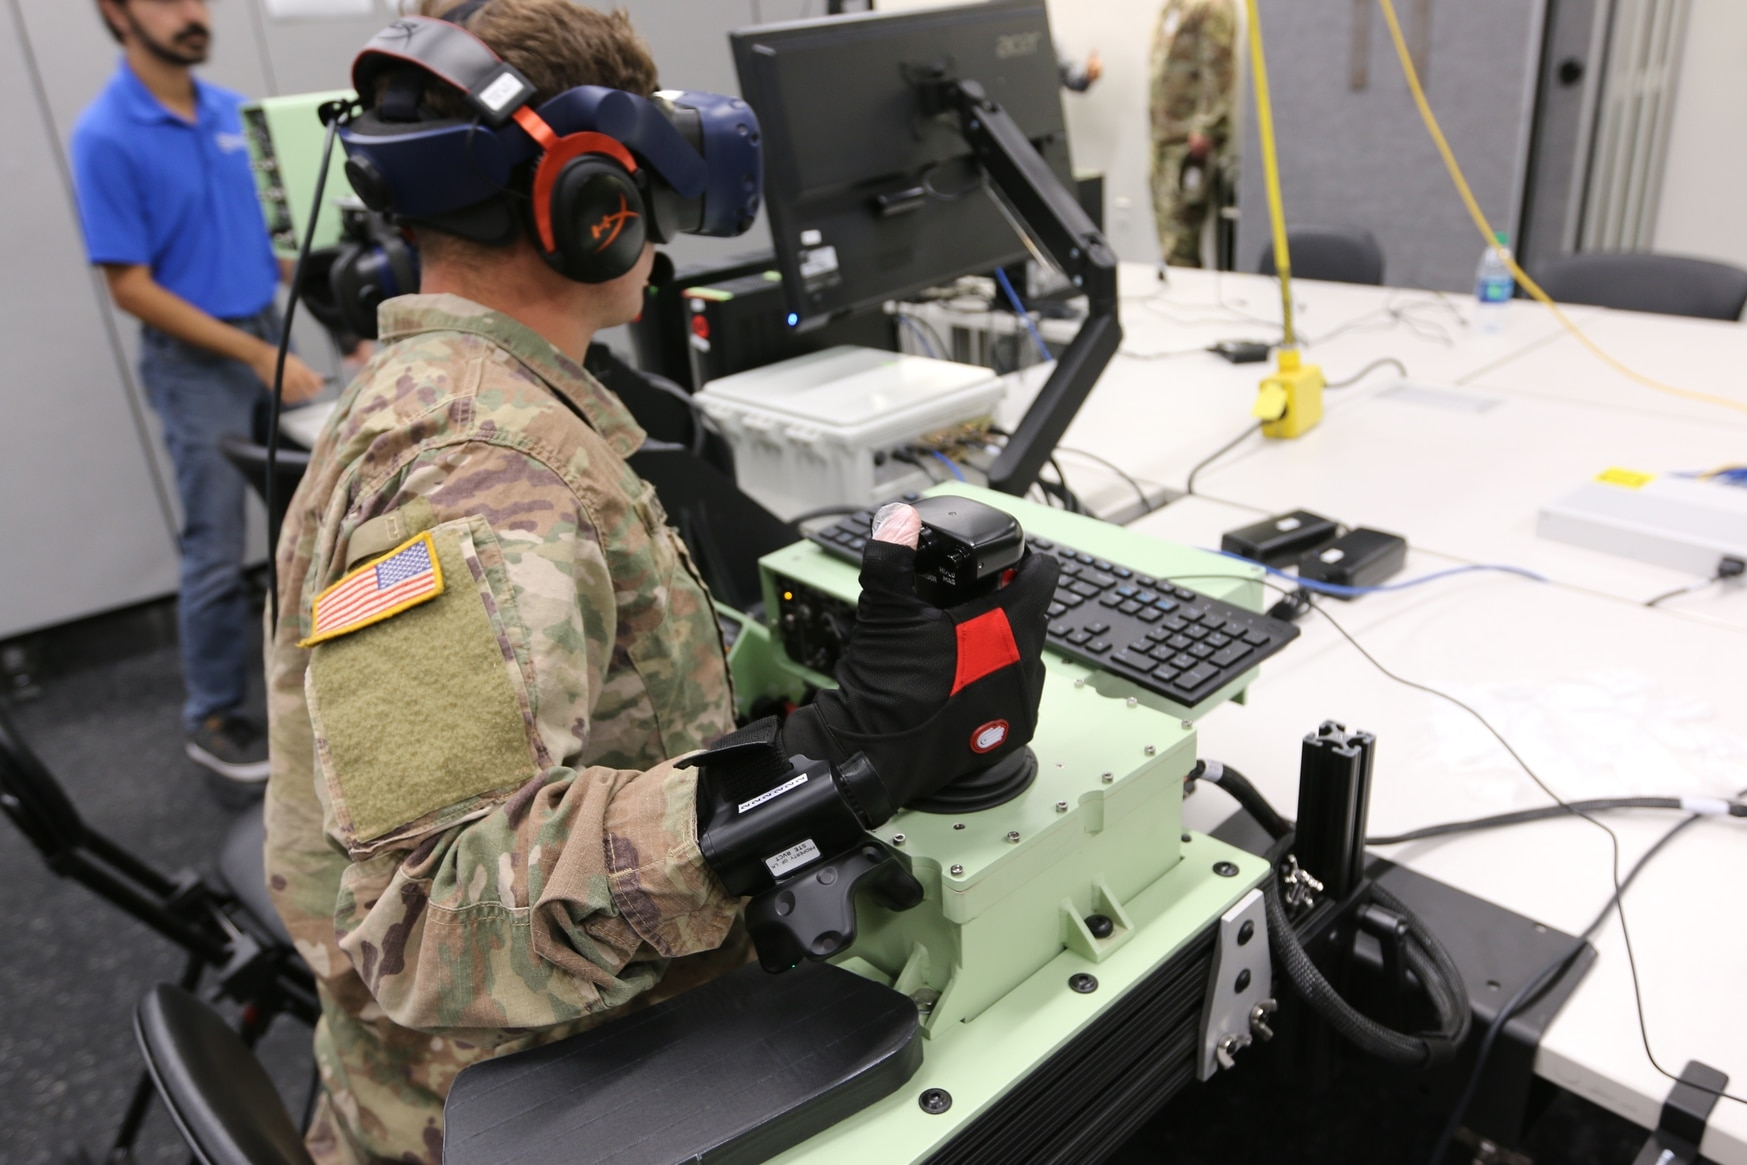 Soldiers at Fort Riley, Kansas, assess a RVCT—Ground prototype that could serve as a trainer for current and future ground vehicles in the Army inventory. The trainer will be a part of the future STE under development. (U.S. Army)